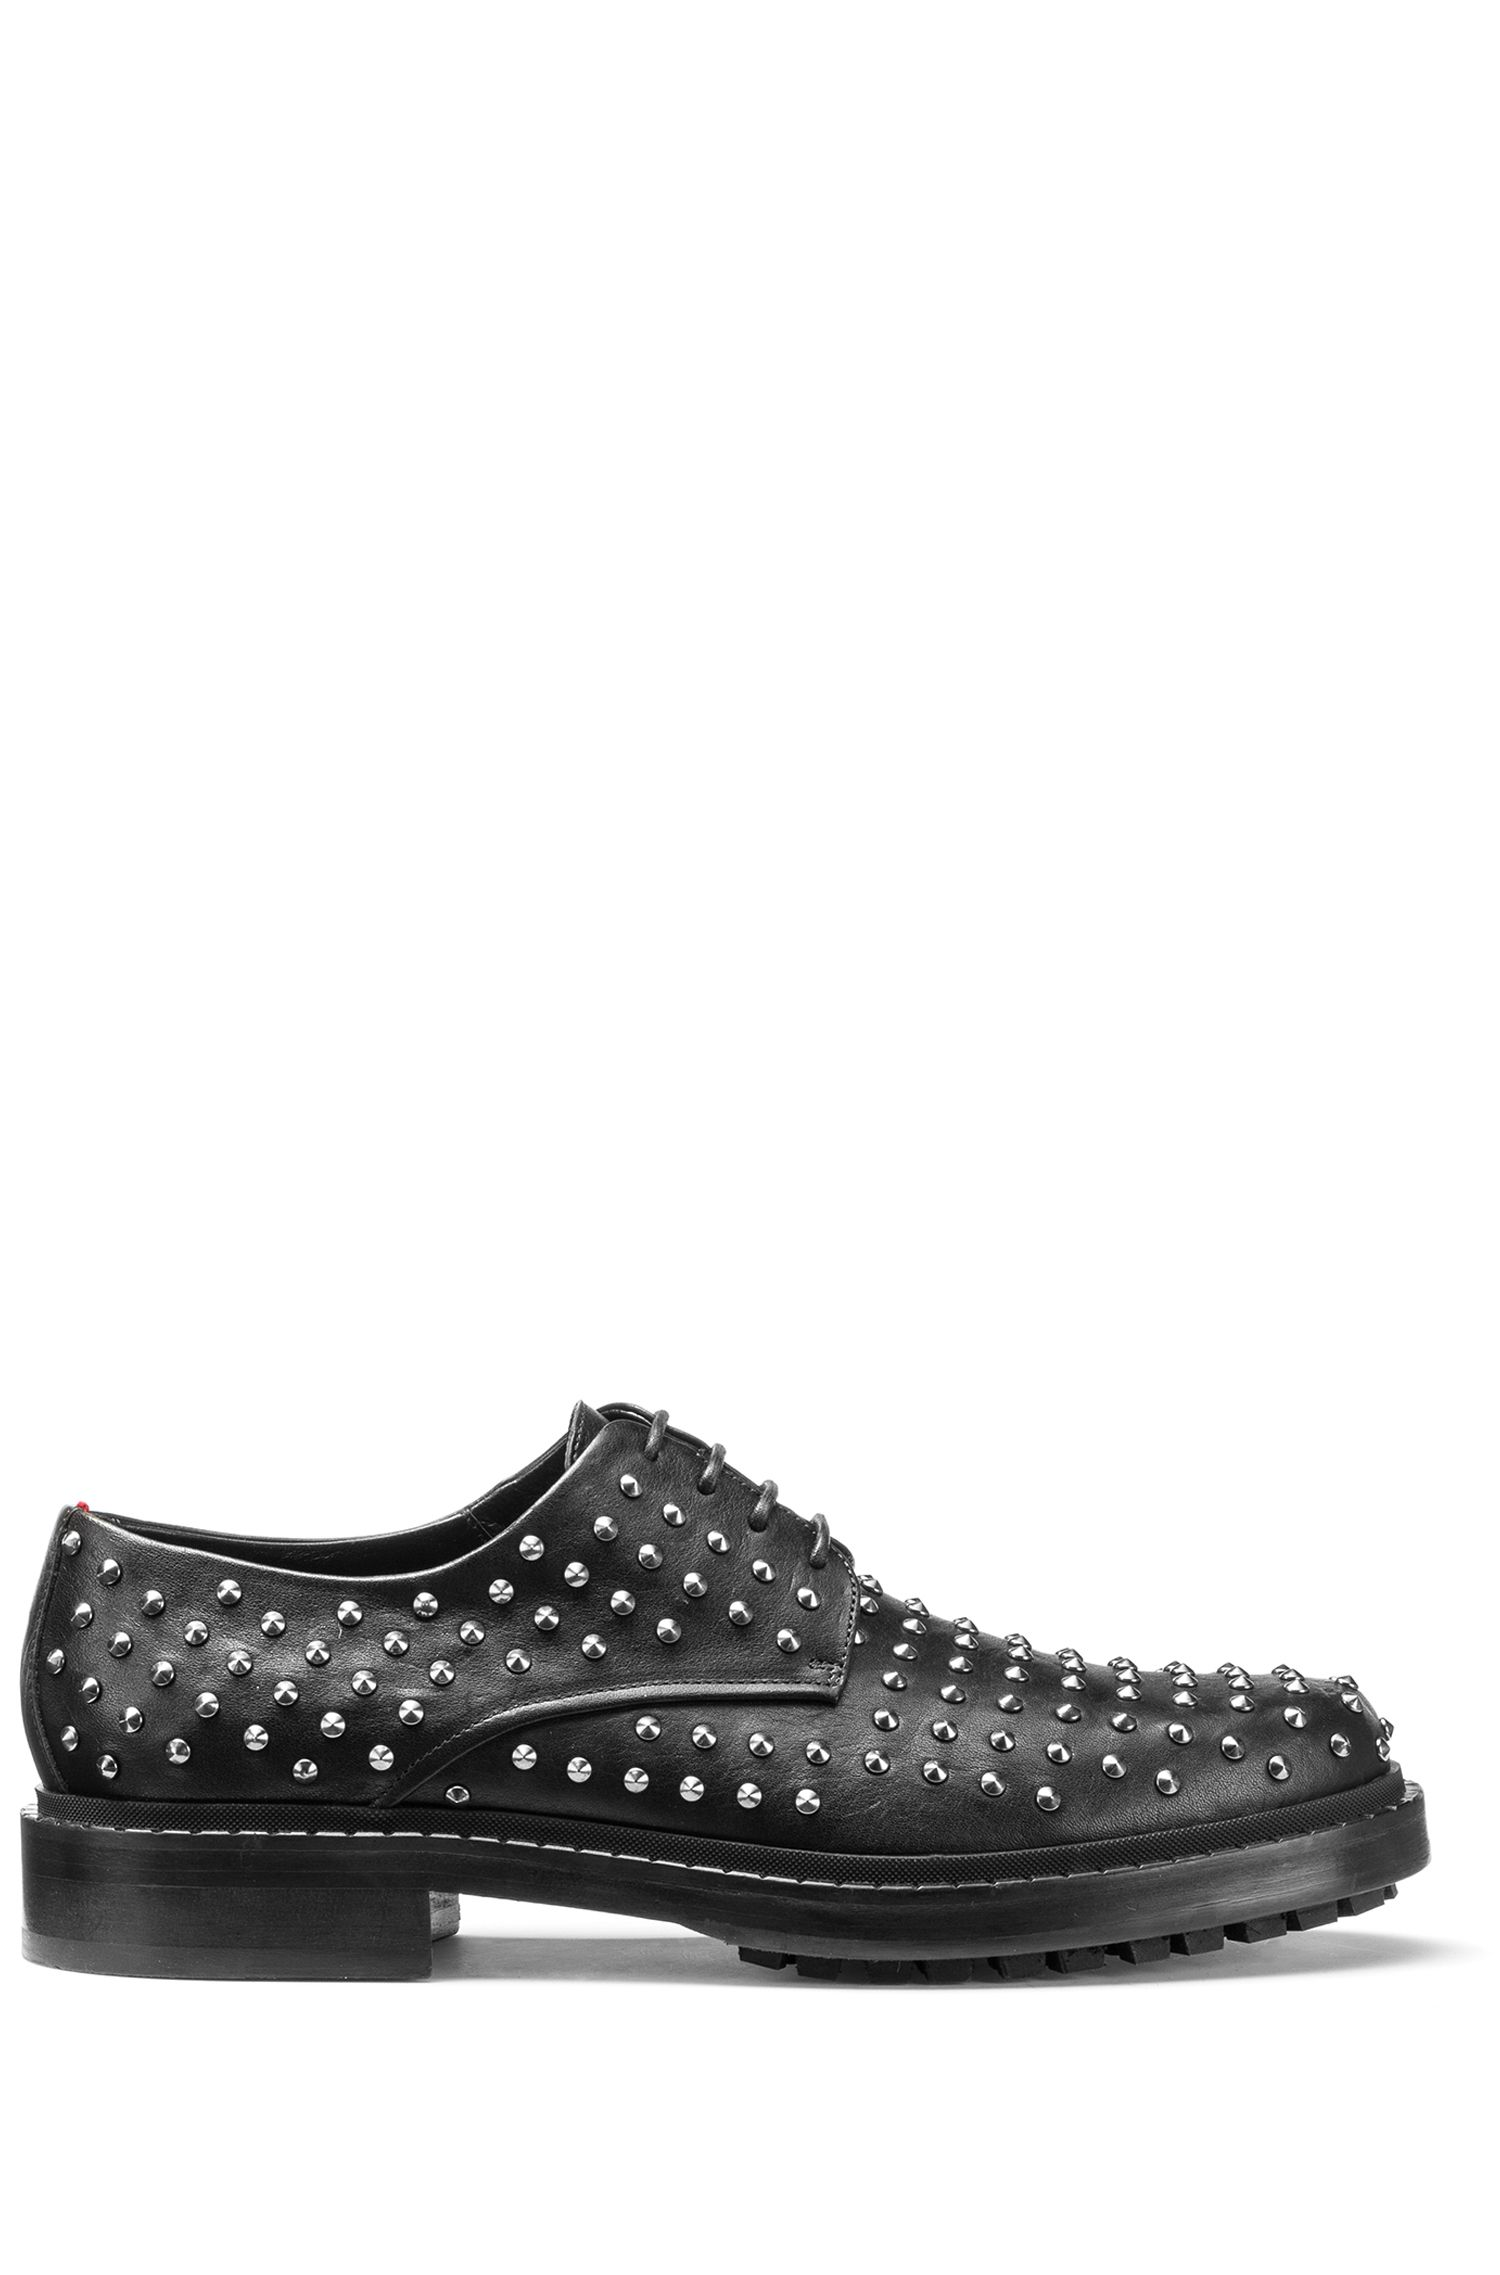 Embellished Derby shoes in soft leather